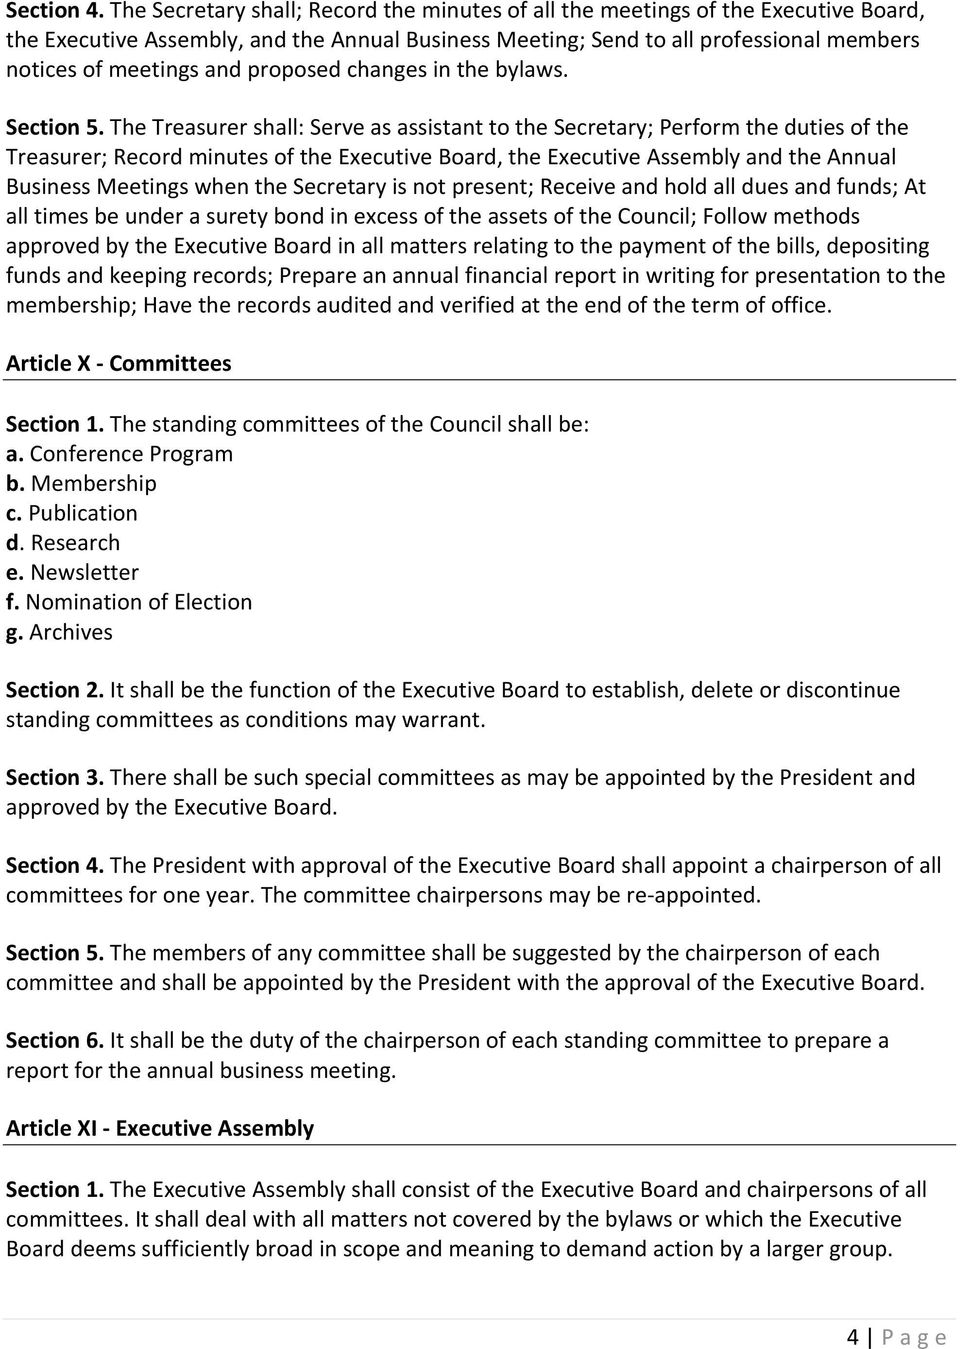 proposed changes in the bylaws. Section 5.